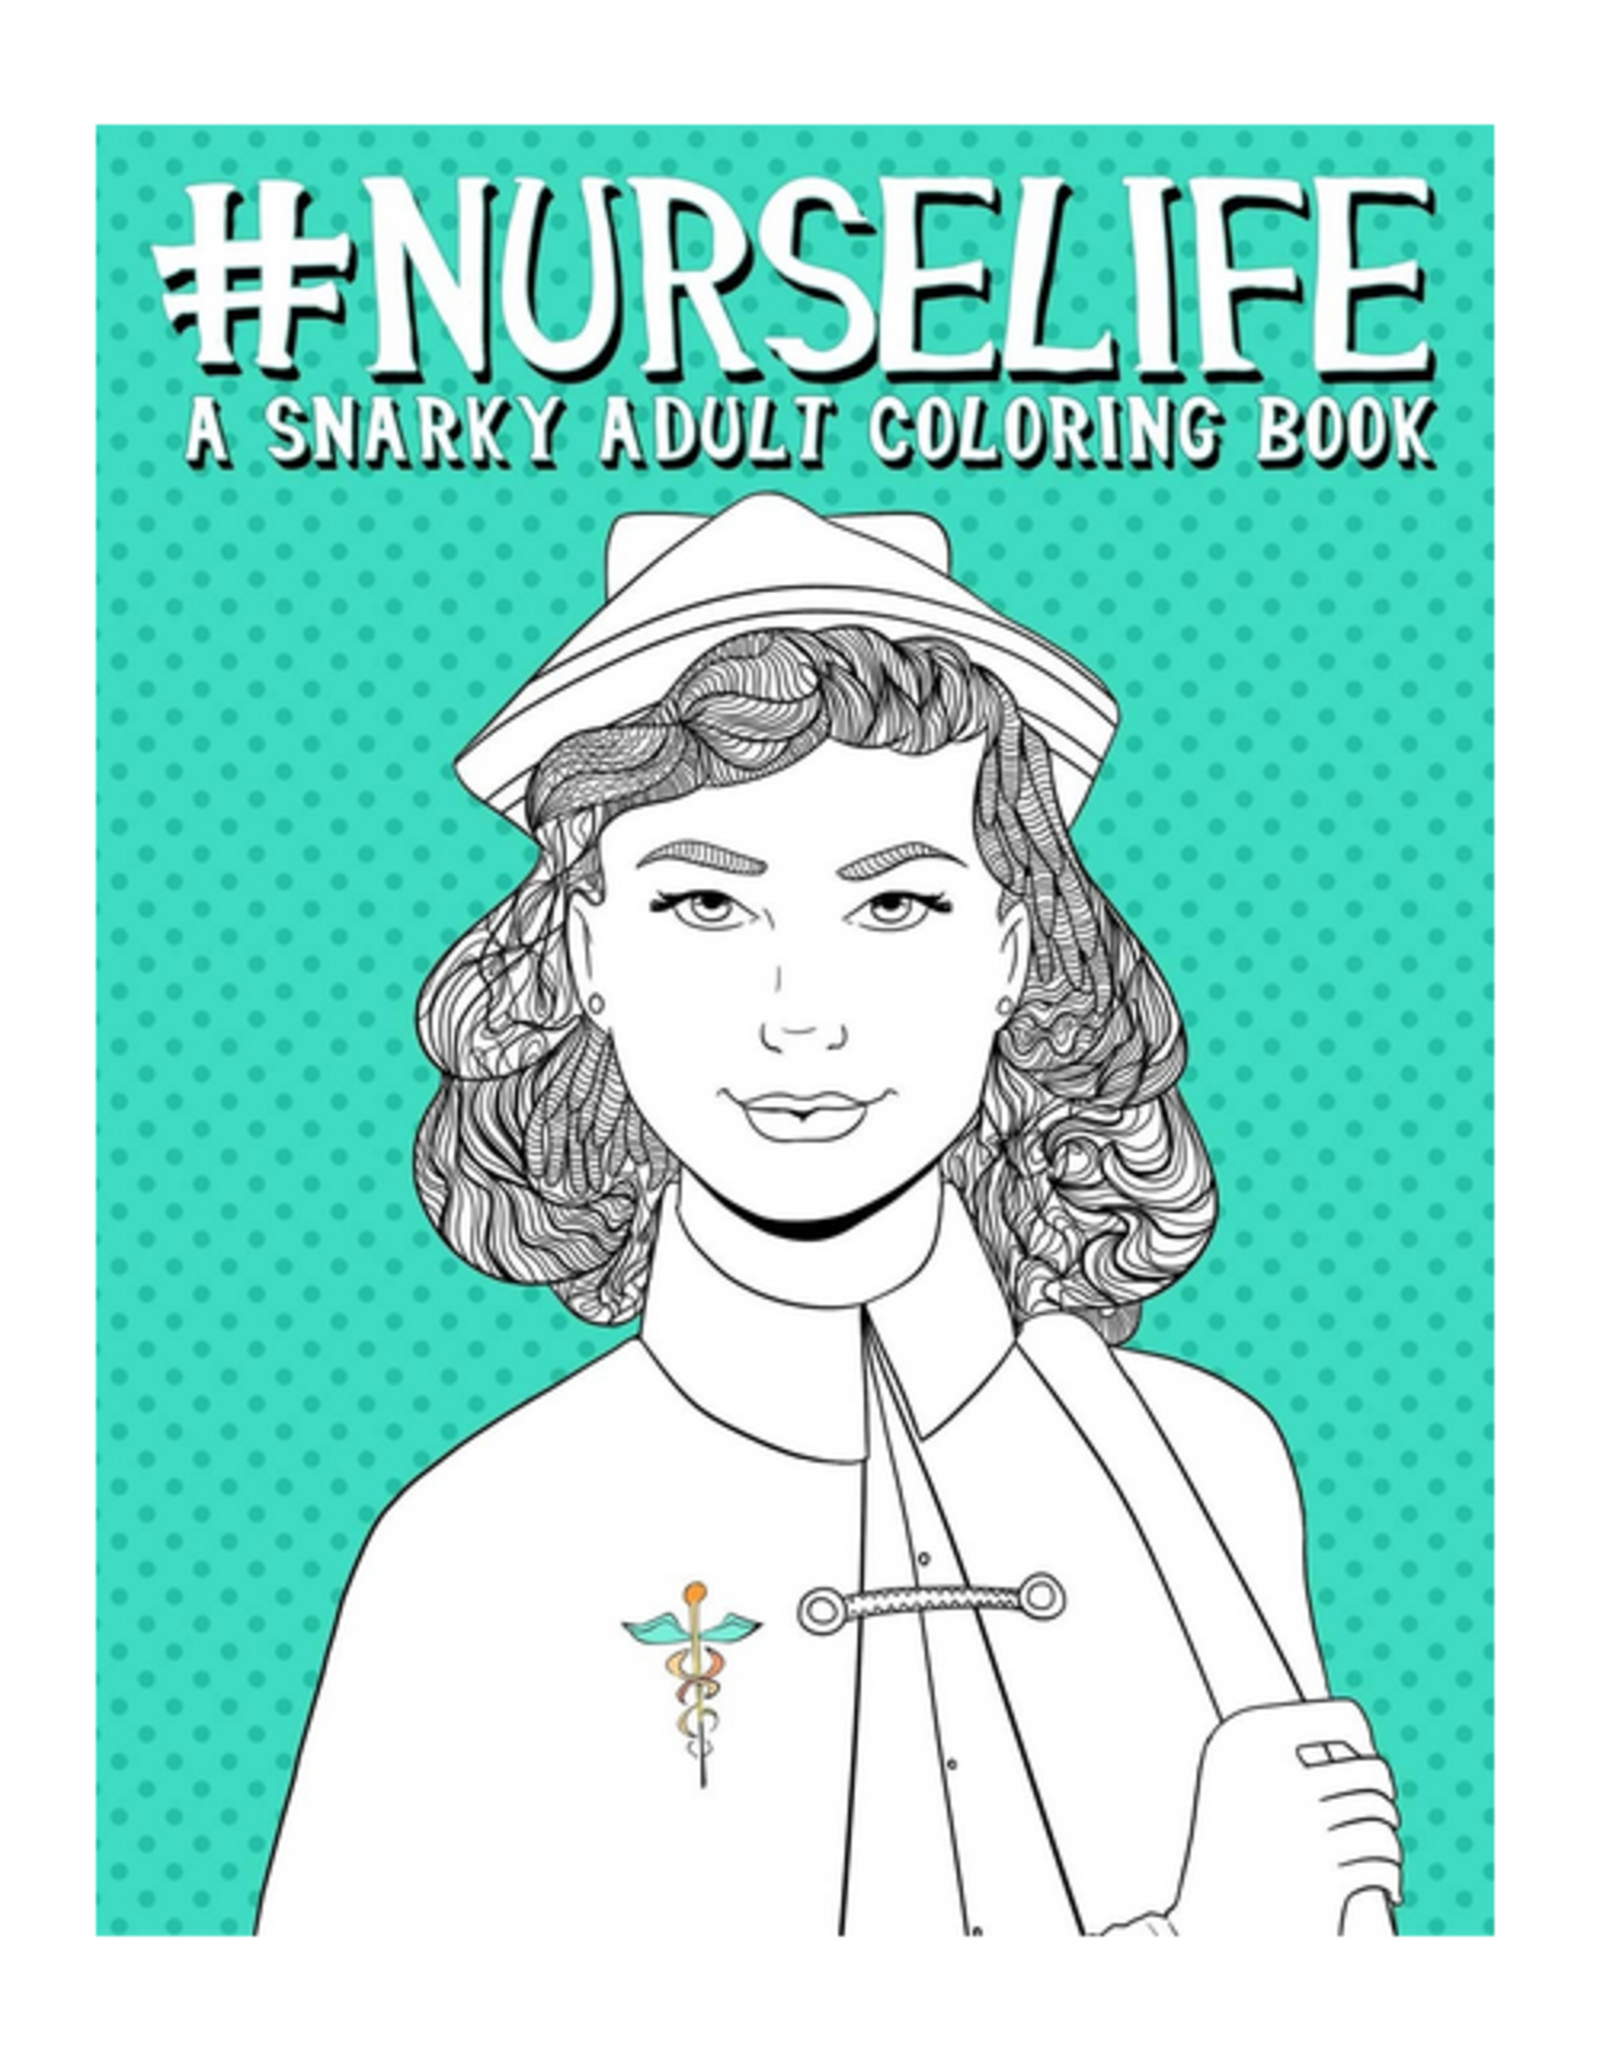 Papeterie Bleu Colouring Book for Adults, #NurseLife